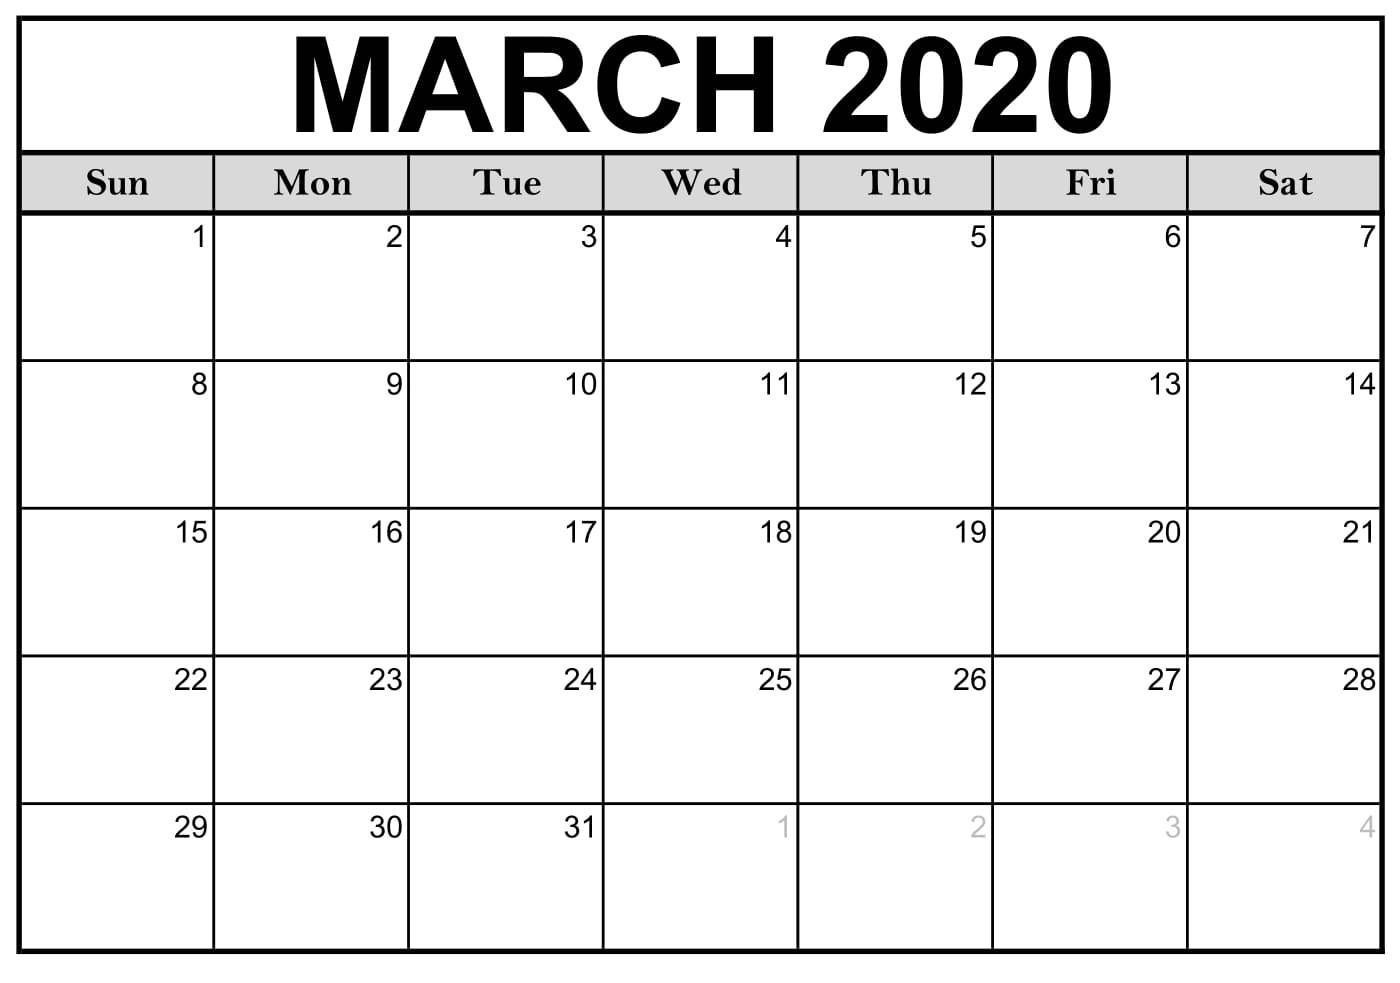 Fillable March 2020 Calendar Template Word, Pdf, Excel  Printable March 2020 Calendar Pdf